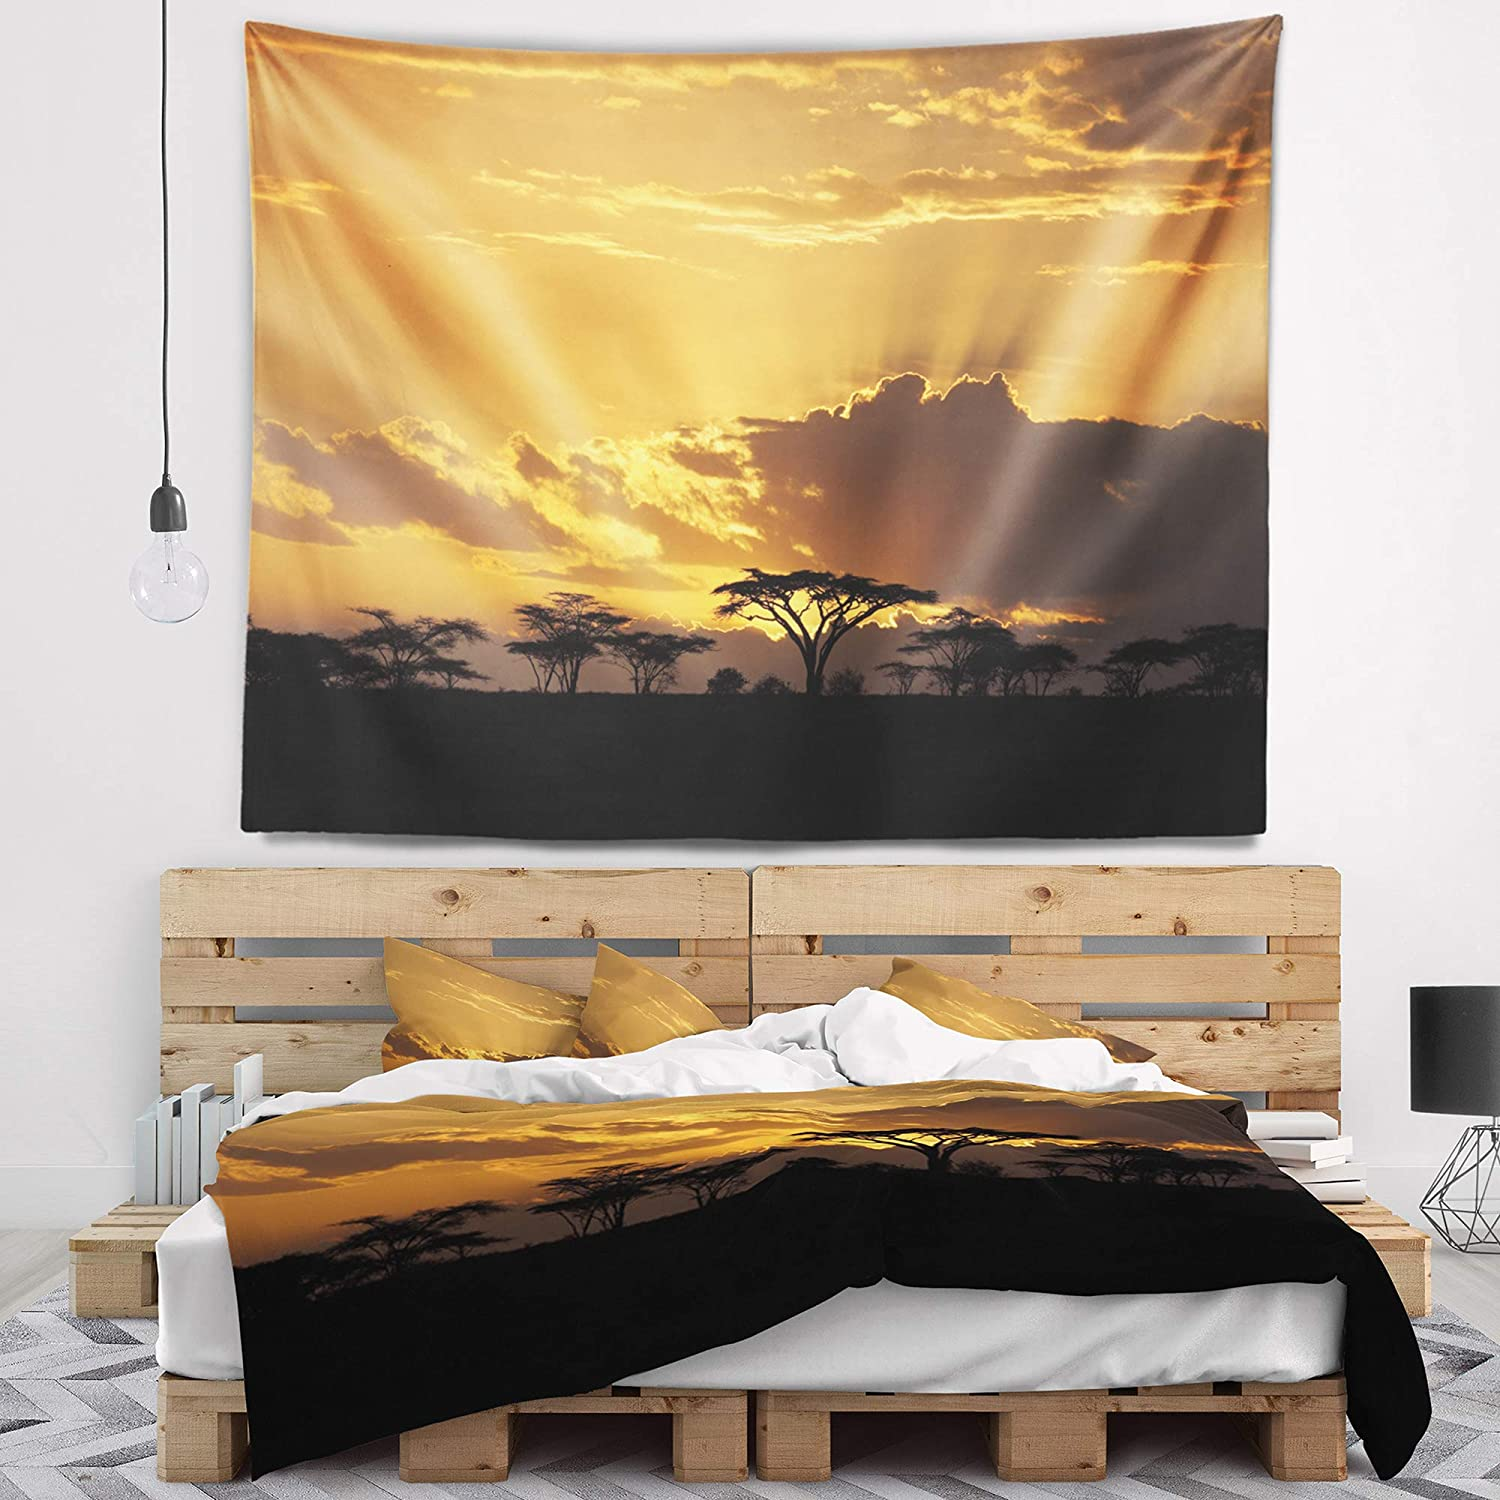 Designart TAP12939-39-32  Sunset in Africa with Acacia Tree Landscape Blanket D/écor Art for Home and Office Wall Tapestry Medium 39 x 32